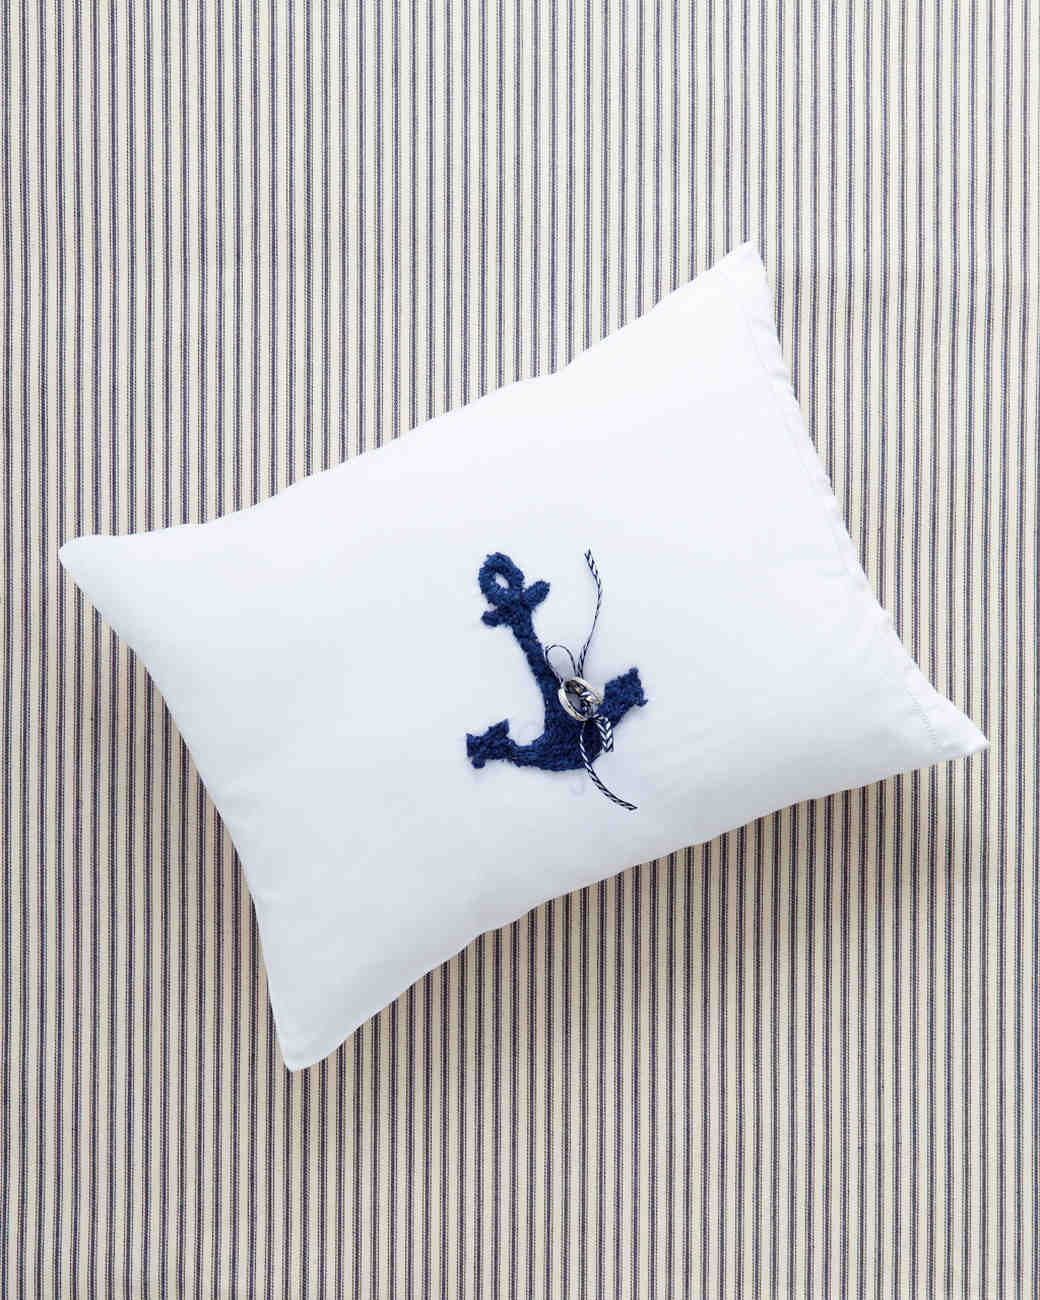 gillian-william-ring-pillow-0009-wd109007.jpg